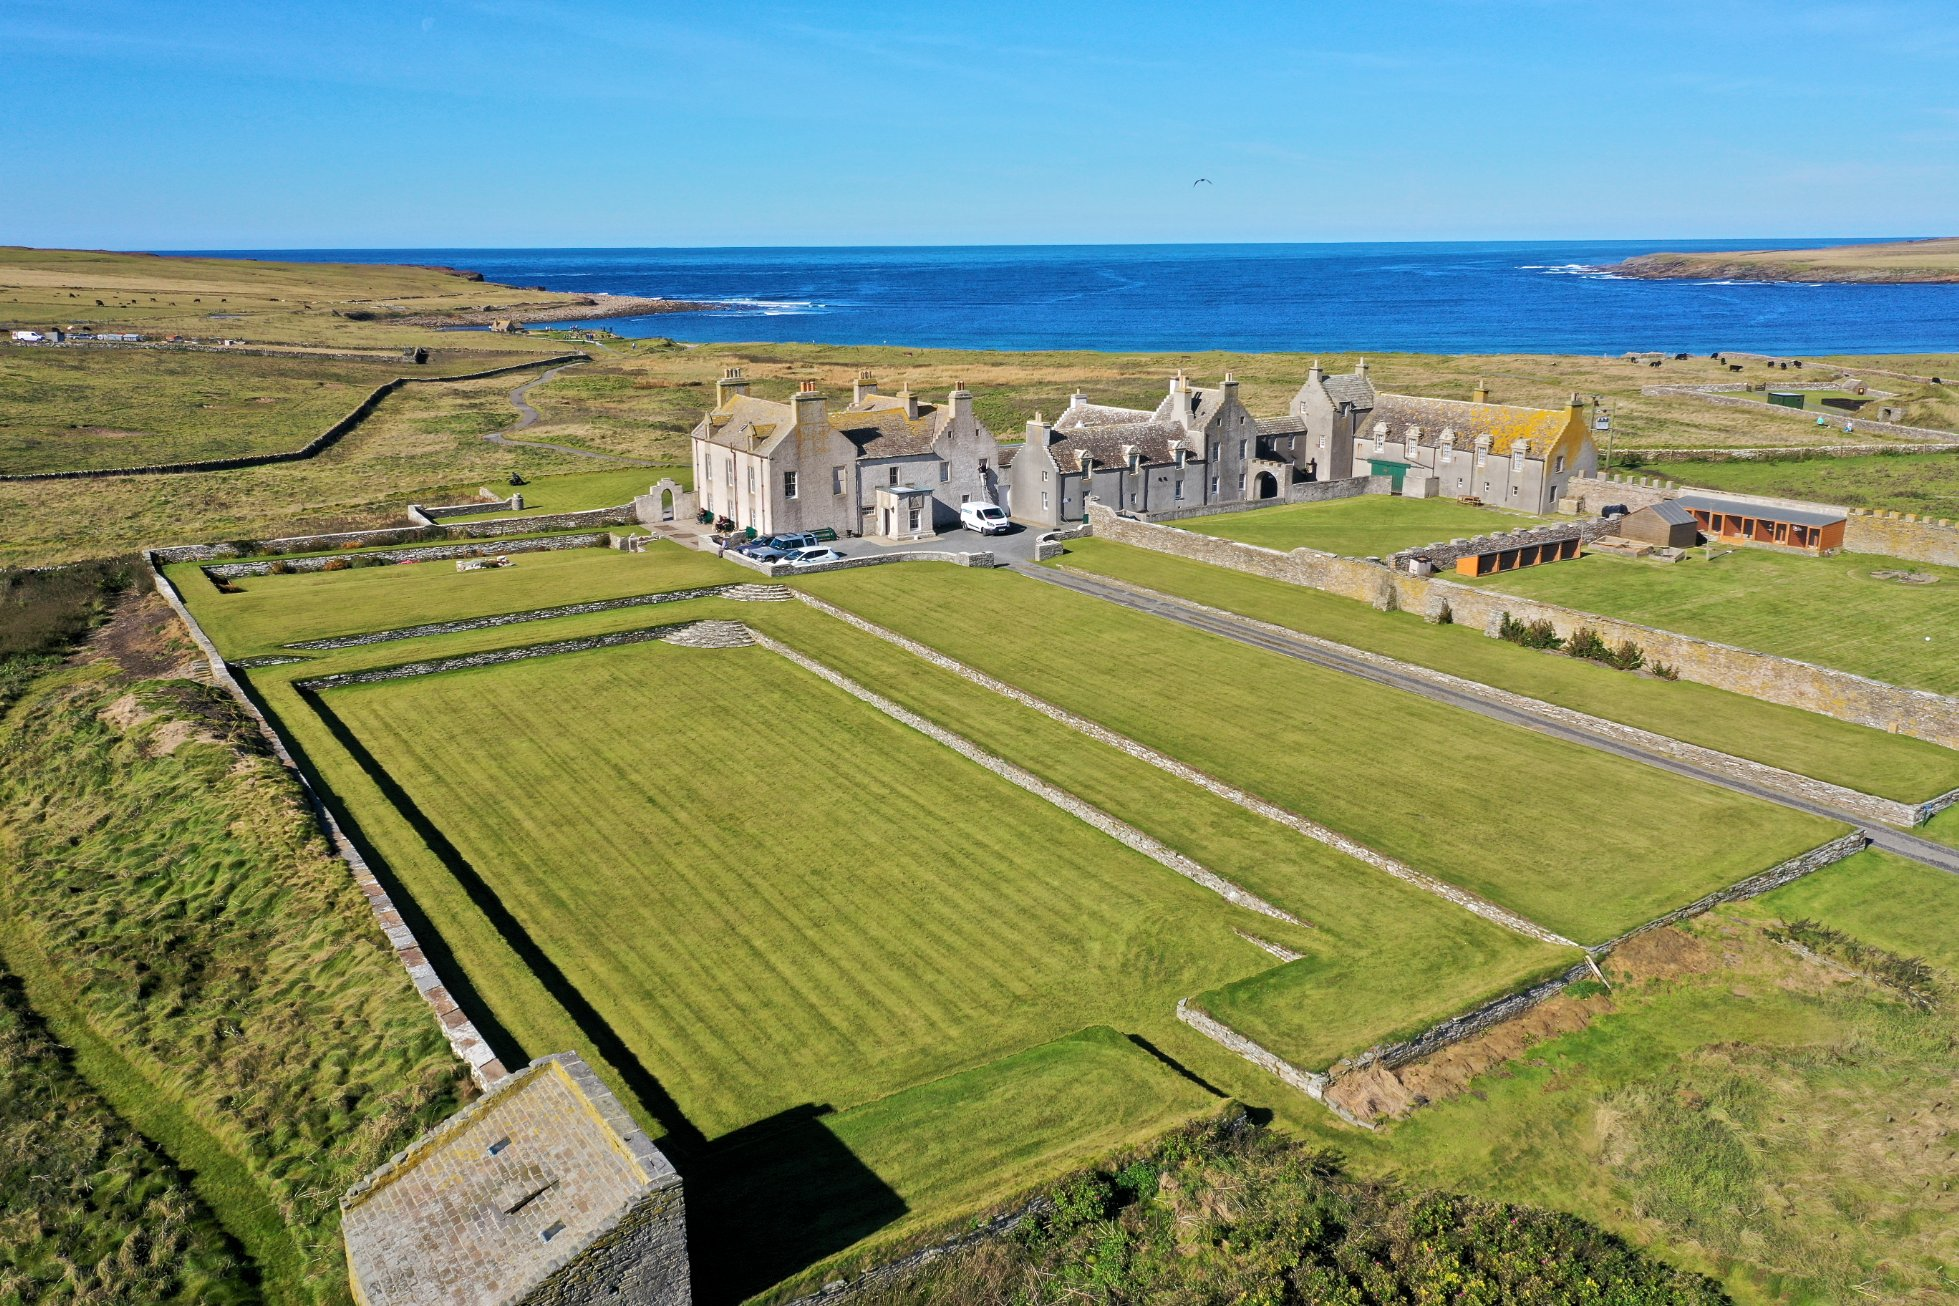 Skaill House sits close to the Bay of Skaill on Orkney's west coast - image by Colin Keldie